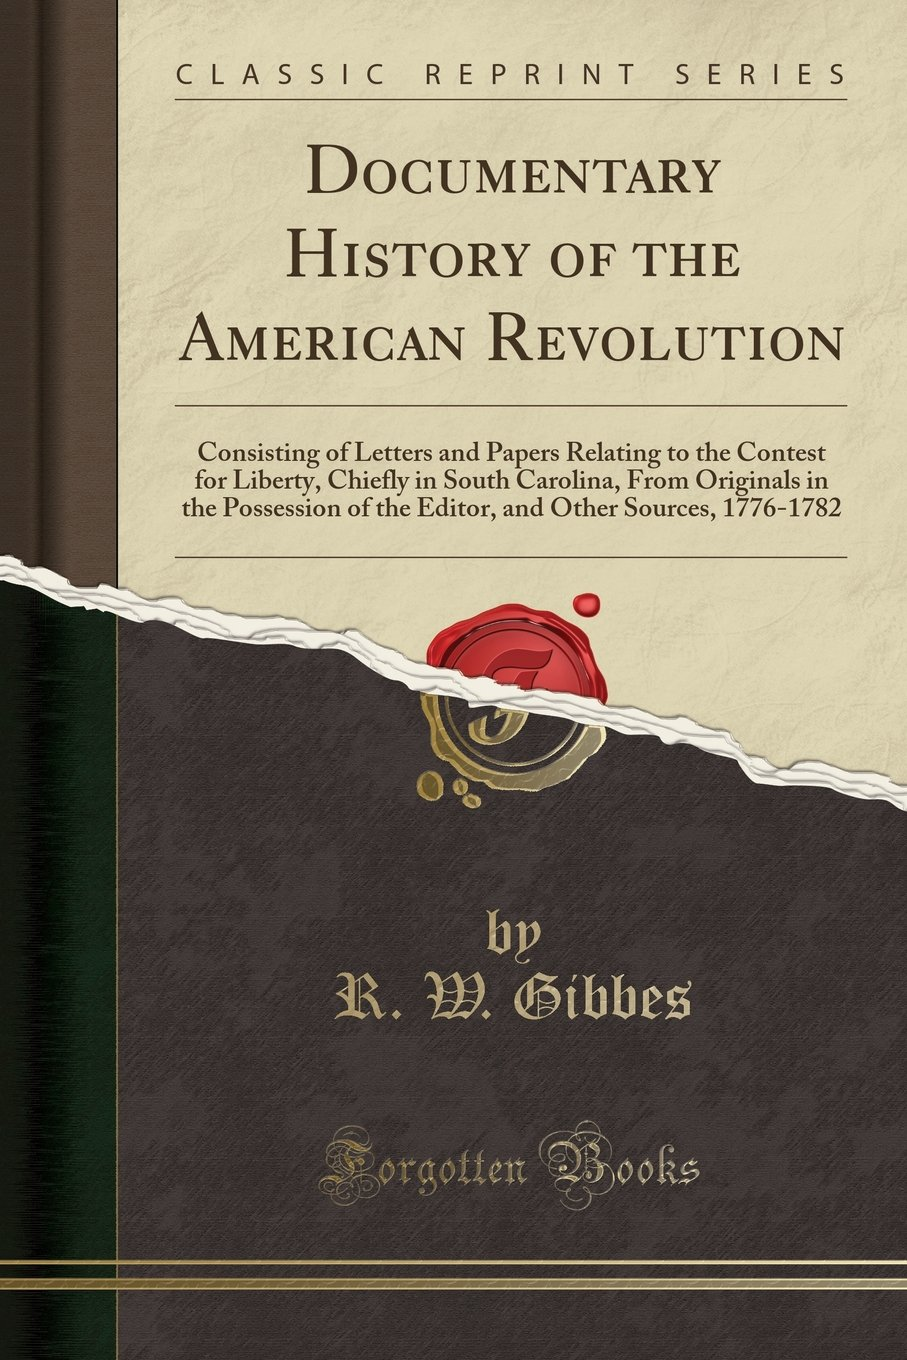 Documentary History of the American Revolution: Consisting of Letters and Papers Relating to the Contest for Liberty, Chiefly in South Carolina, From ... Other Sources, 1776-1782 (Classic Reprint) pdf epub